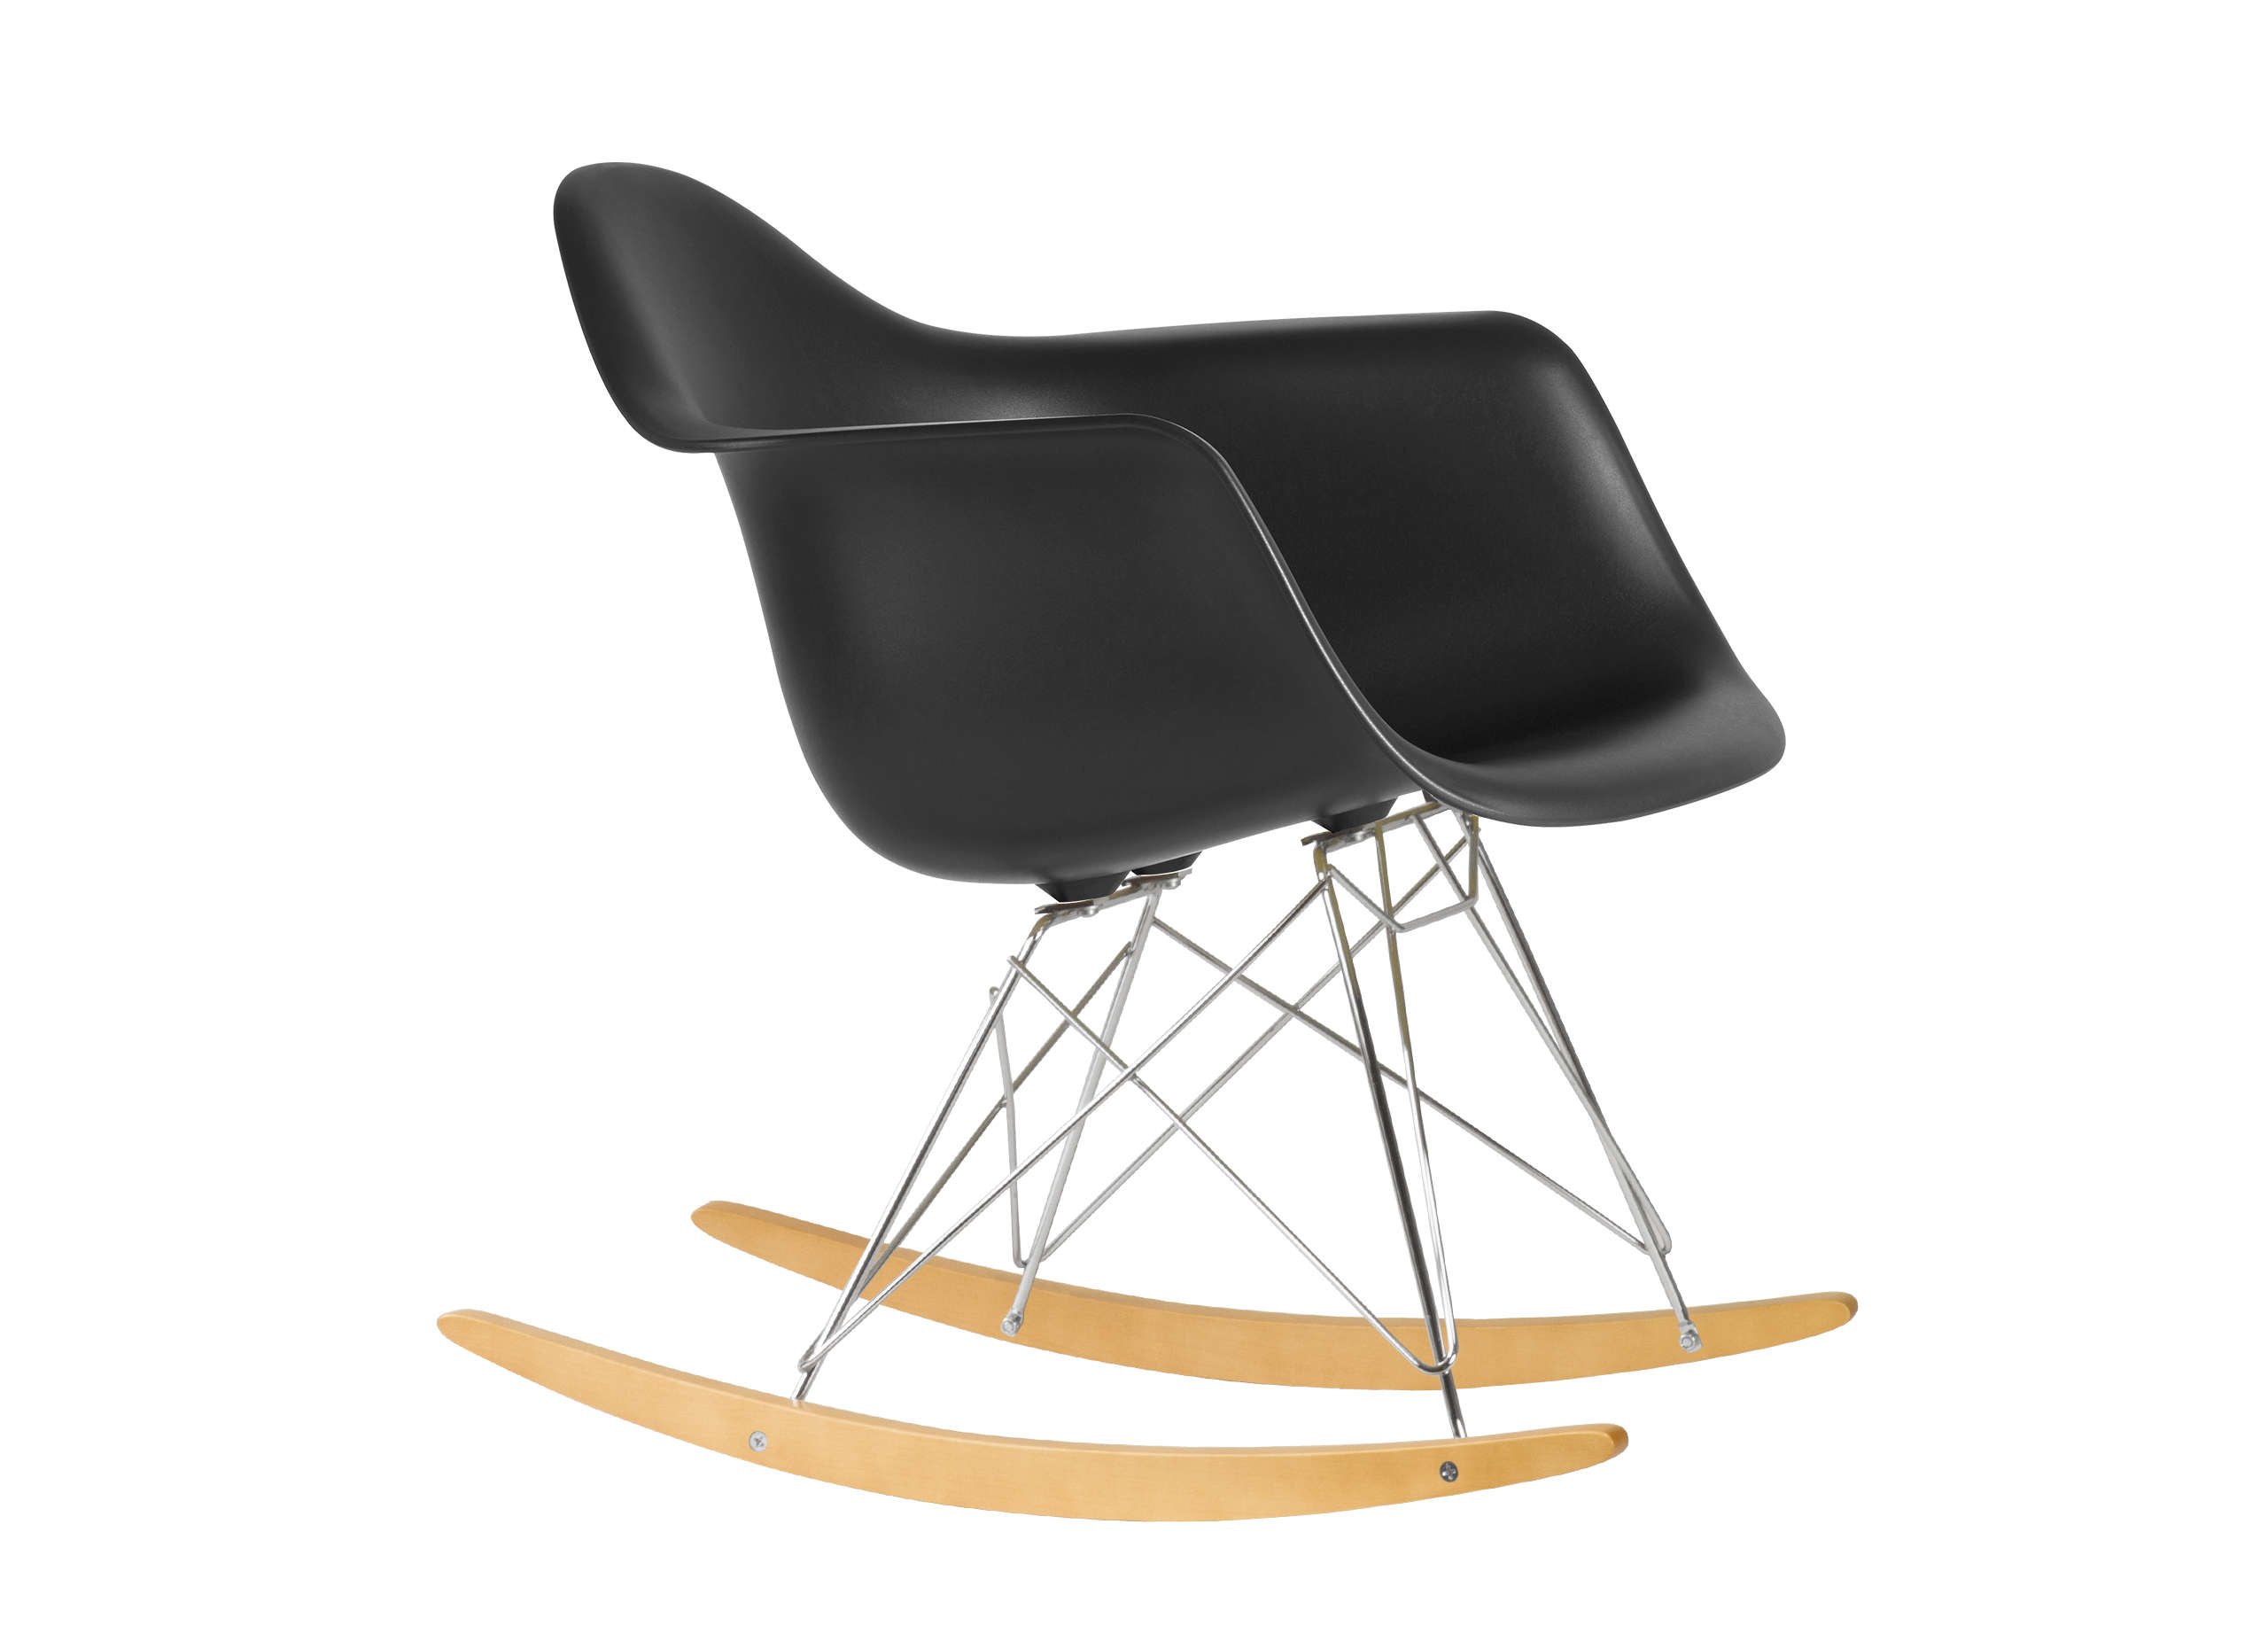 vitra eames chair und andere designklassiker the qvest shop